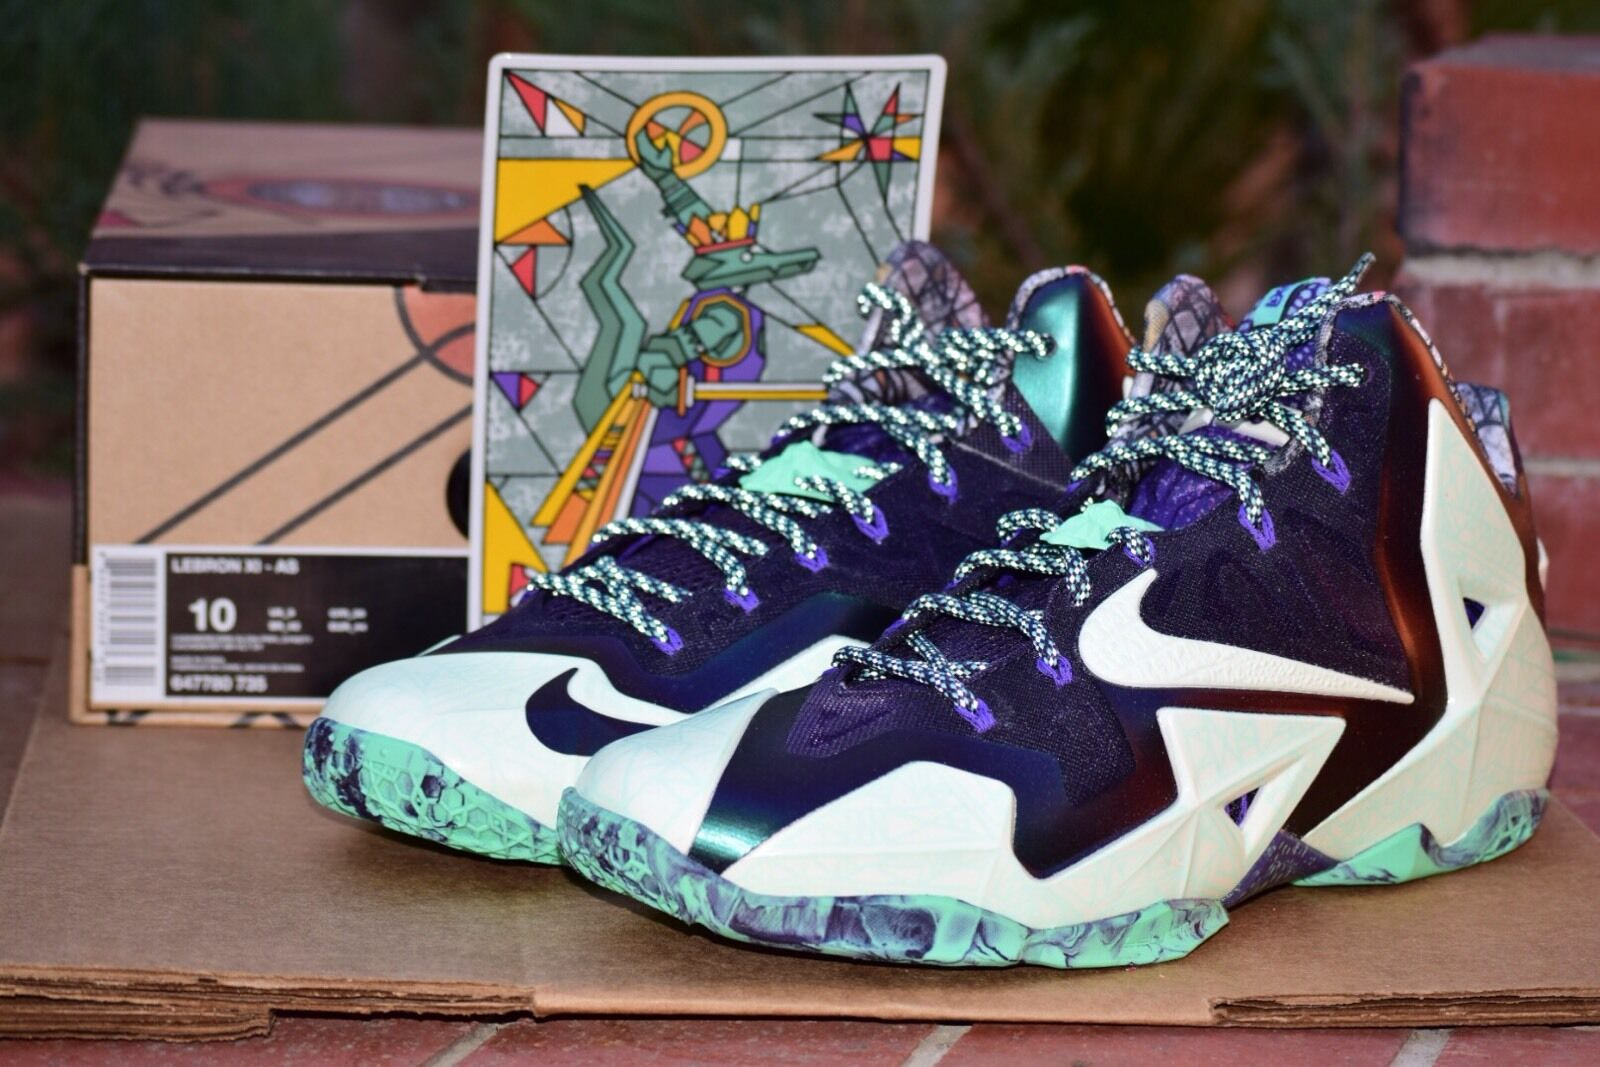 DS 2014 Nike LeBron xi 11 Gumbo All Star Size 13